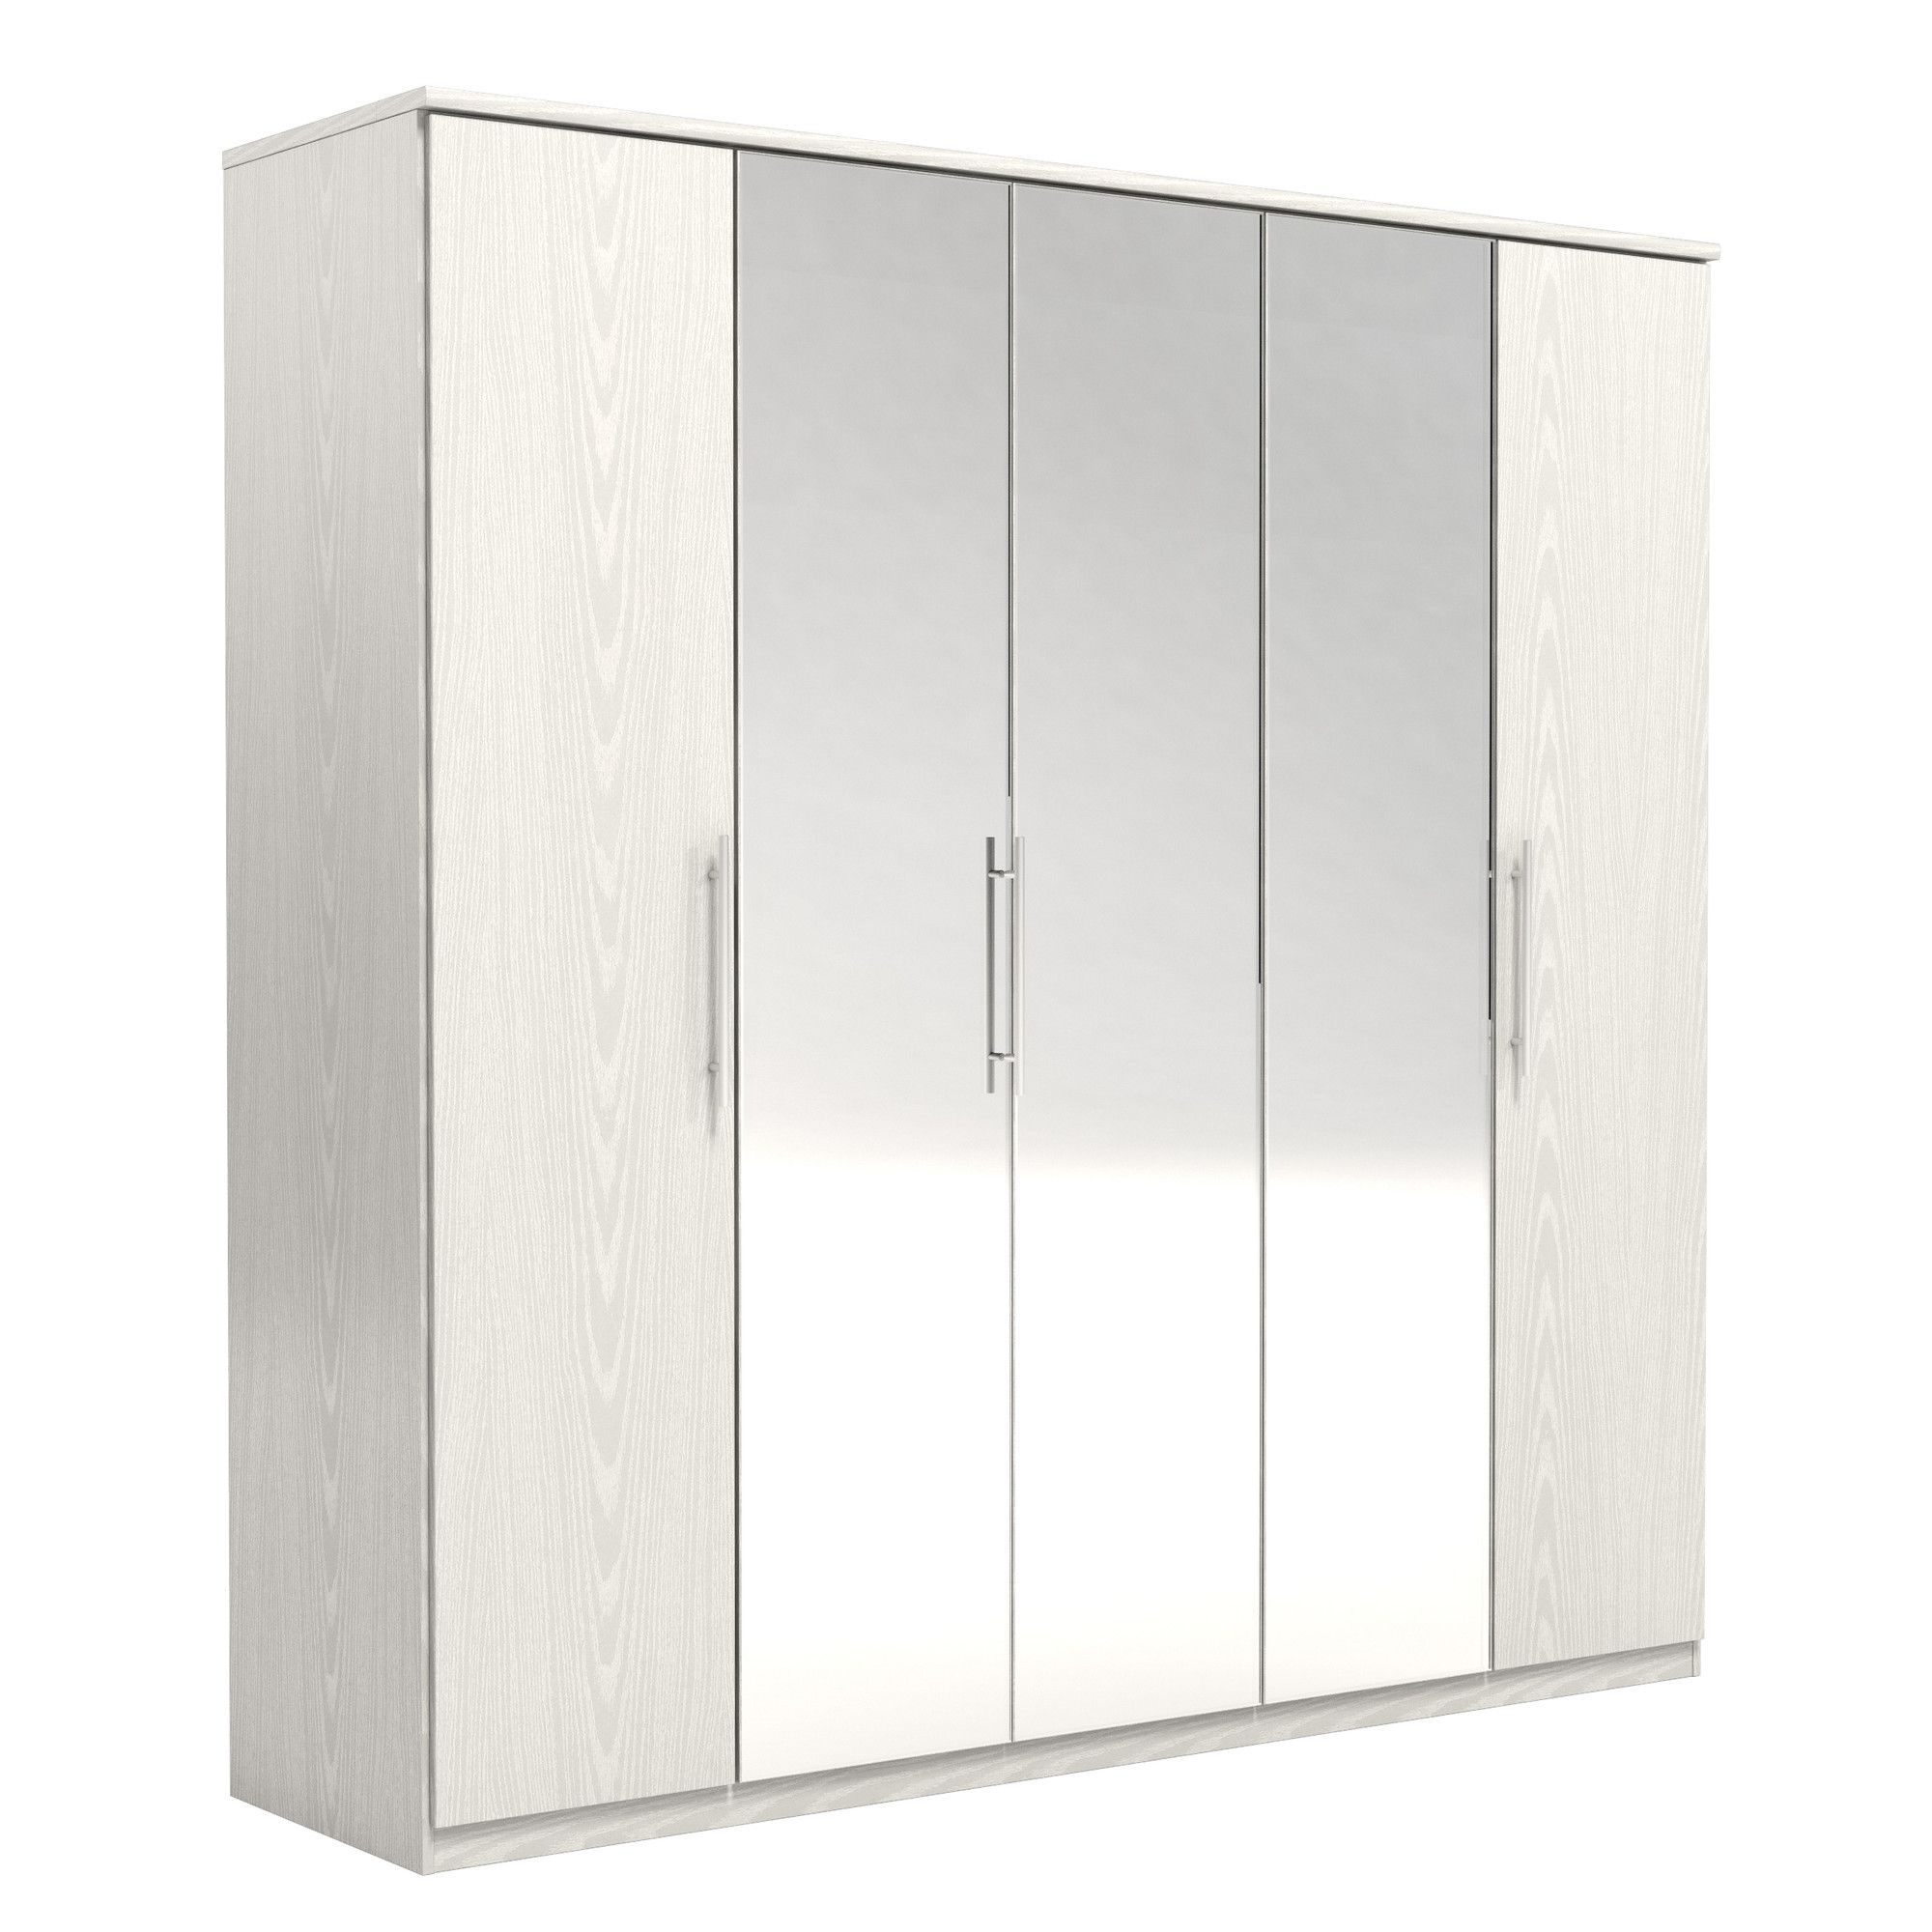 Urbane Designs Prague 5 Door Wardrobe - White at Tesco Direct